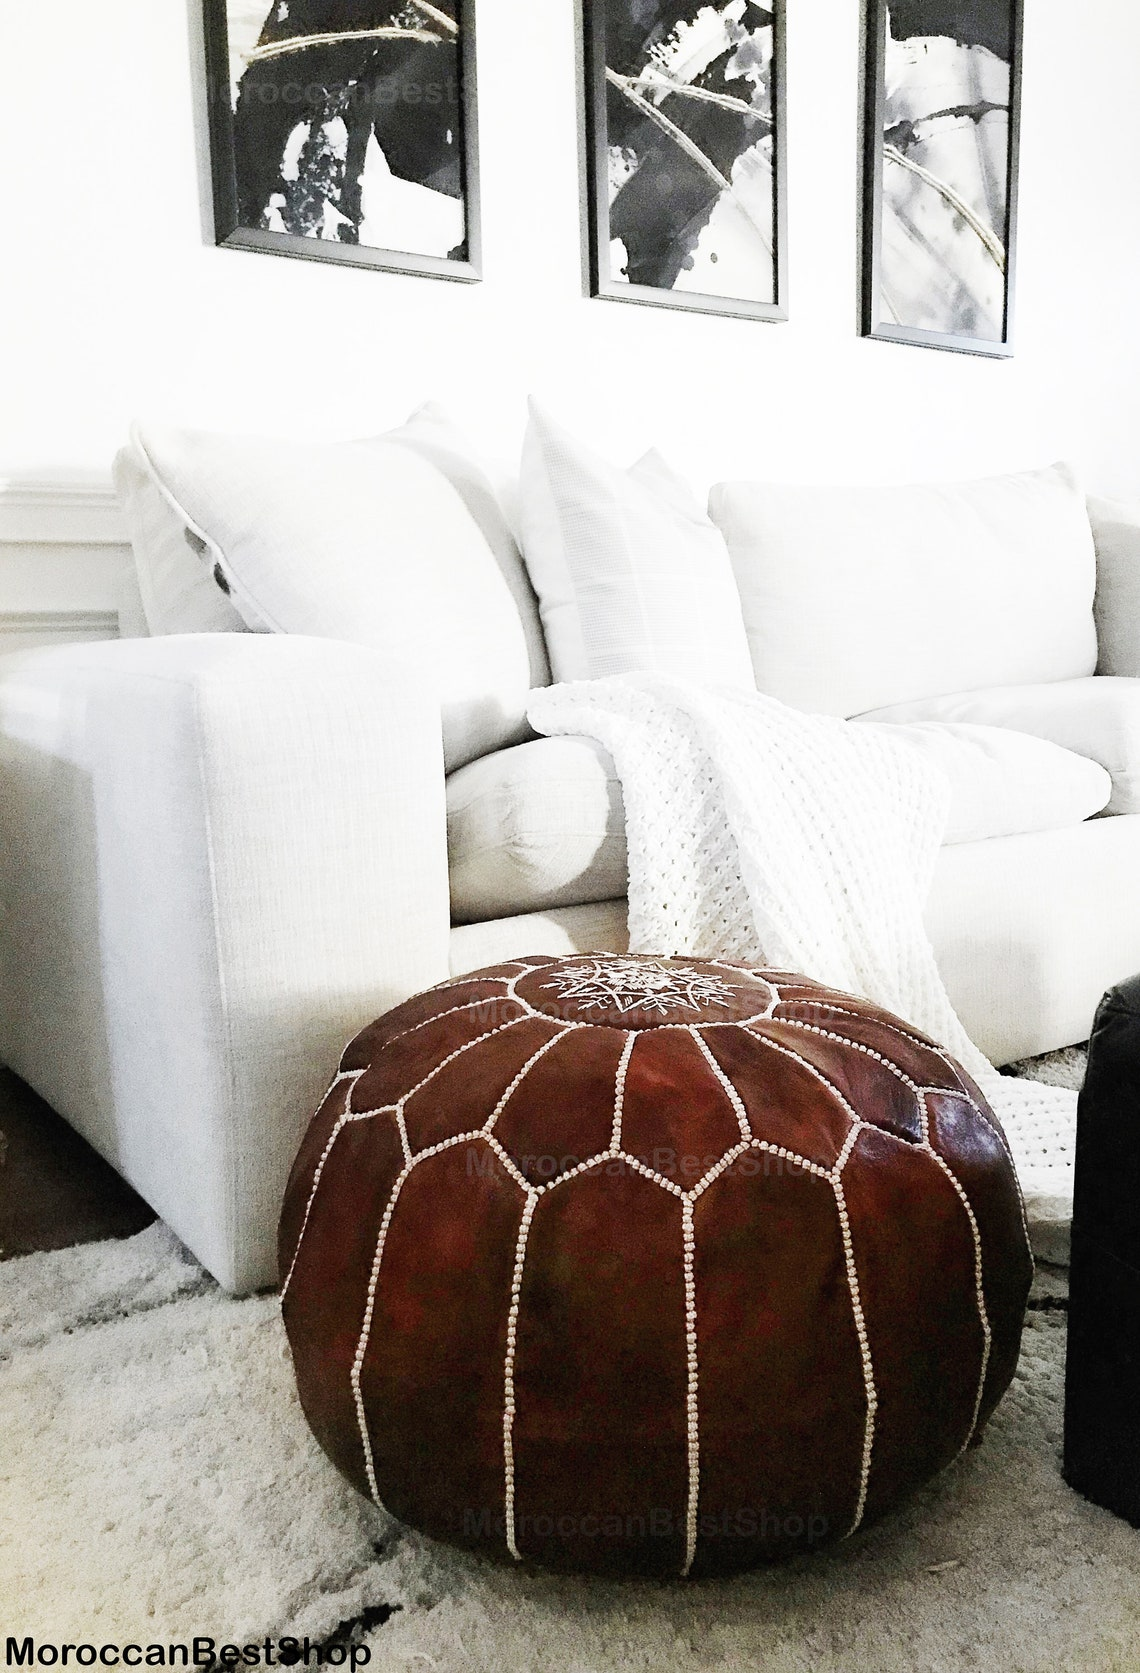 Set of 2 Pouf Ottoman , Leather Ottoman Foot Stool, Ottoman Coffee Table Footstool, Moroccan Leather Pouf Ottoman .